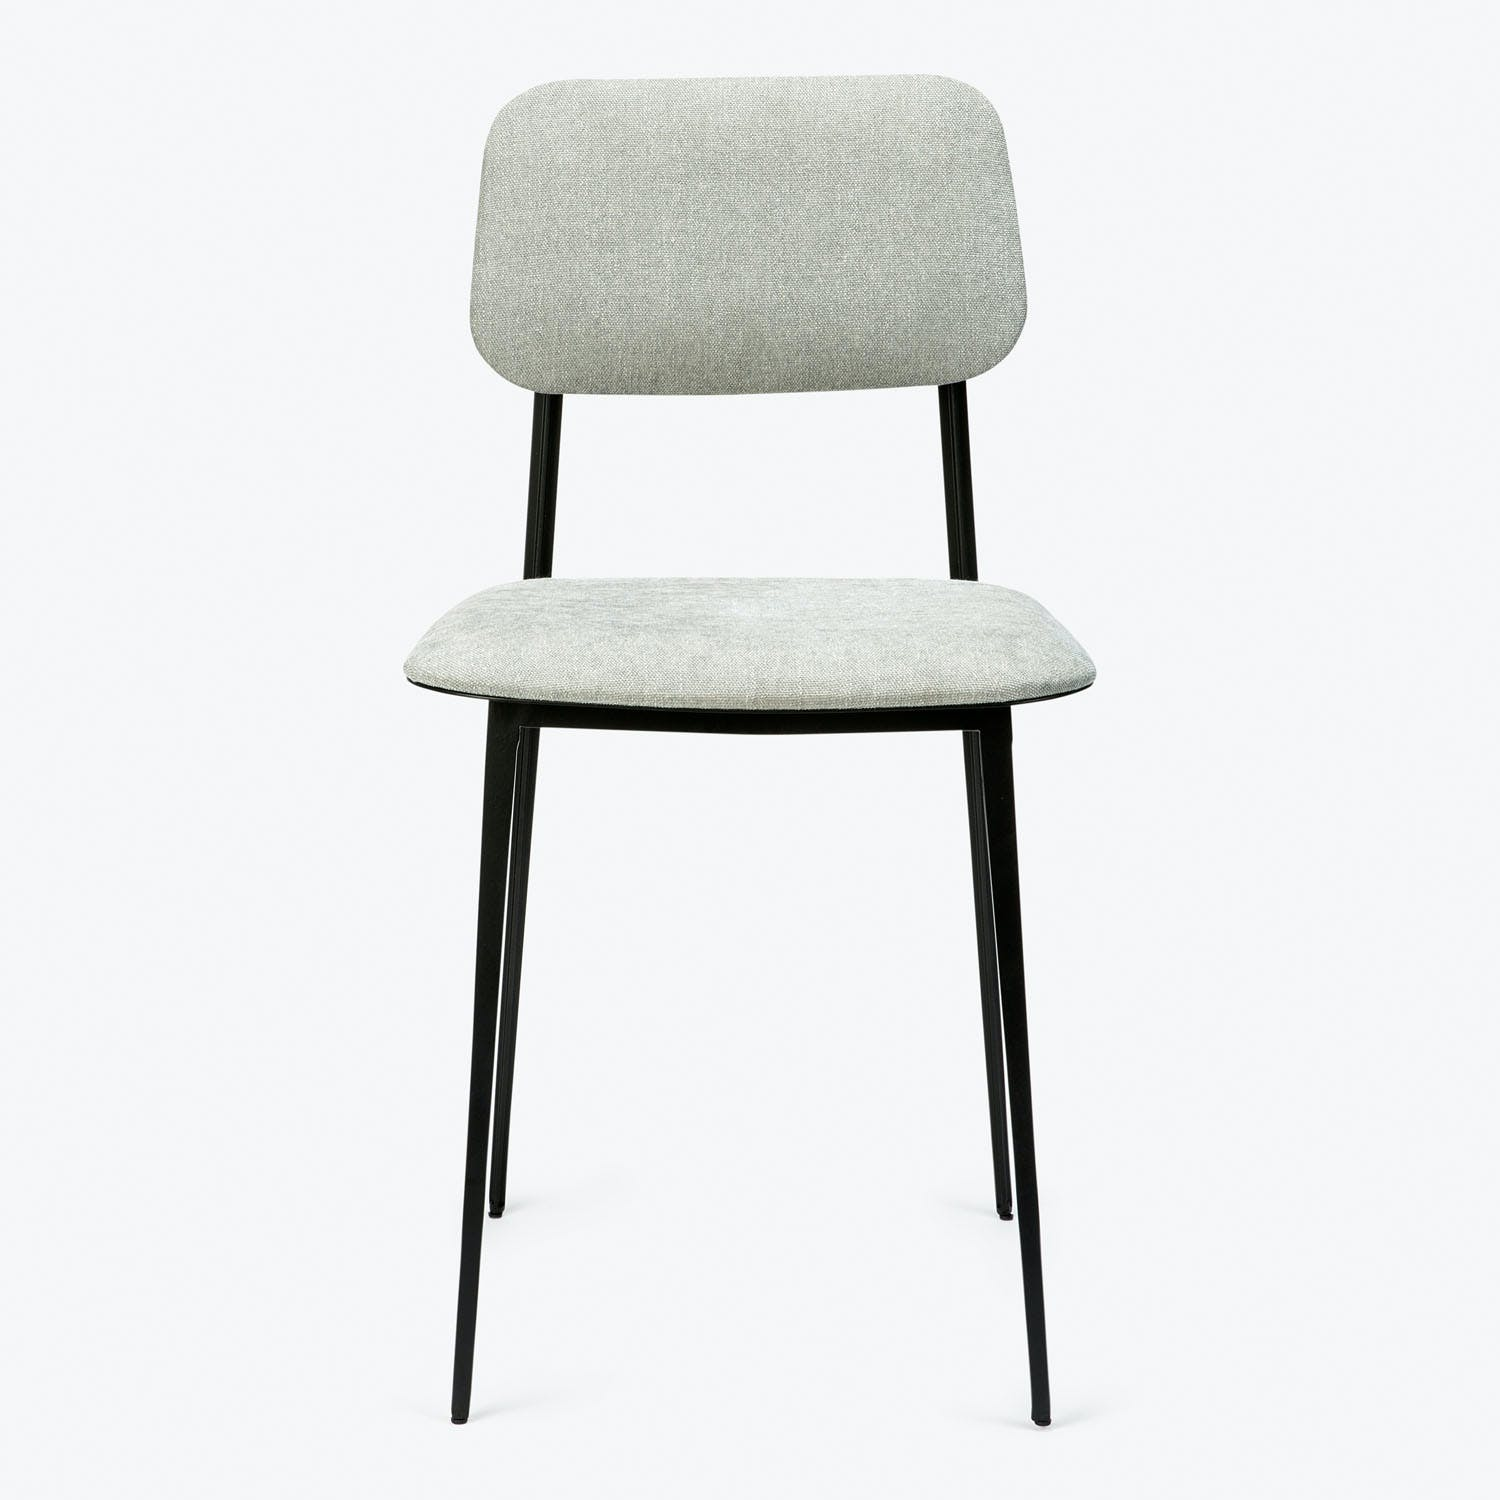 Product Image - Anders DC Dining Chair Light Gray